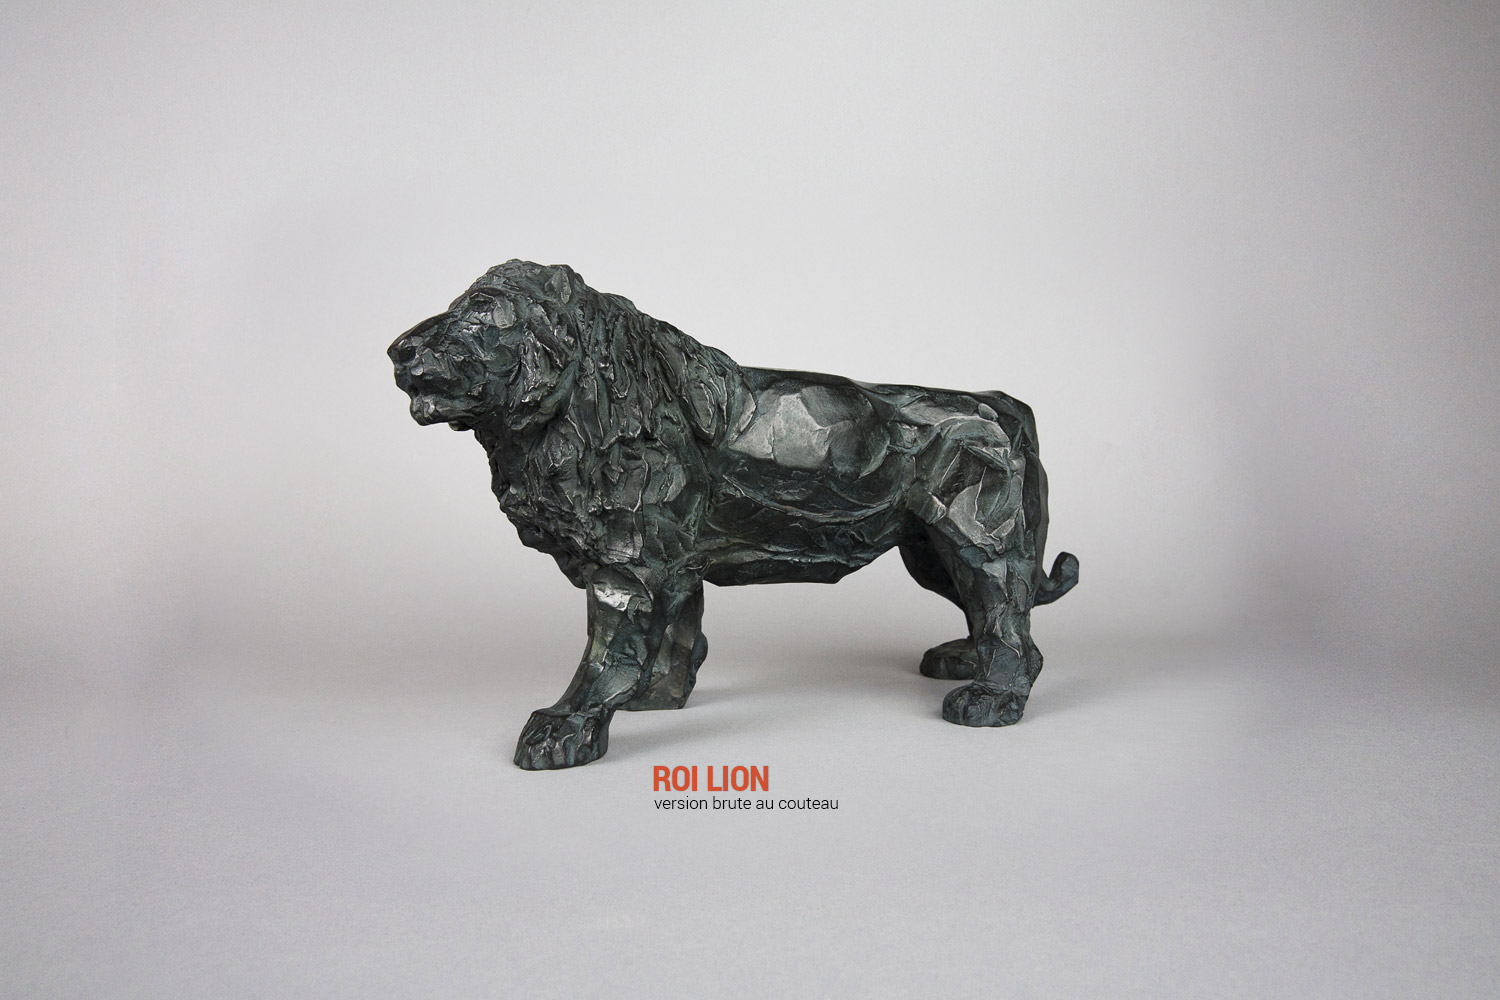 Roi Lion Version brute au couteau